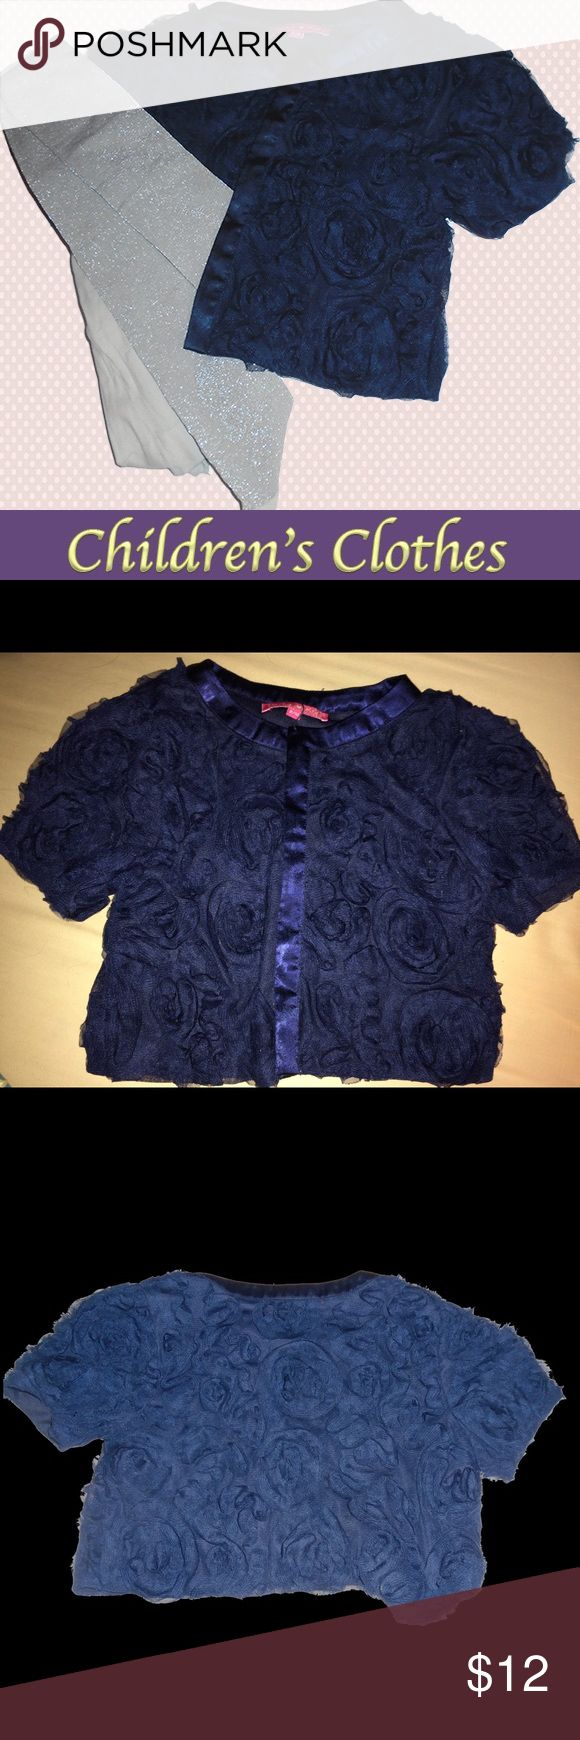 Derby Kids size 8 to 10 fancy lacy navy jacket This magnificent jacket is so dark that it looks almost black.  Fabric and lace create The look of  Flowers.  This jacket is lined. I am including silver shimmery tights where the size is not stated but it looks about the right size. This is just an extra that is no charge. Derhy Kids Jackets & Coats Blazers